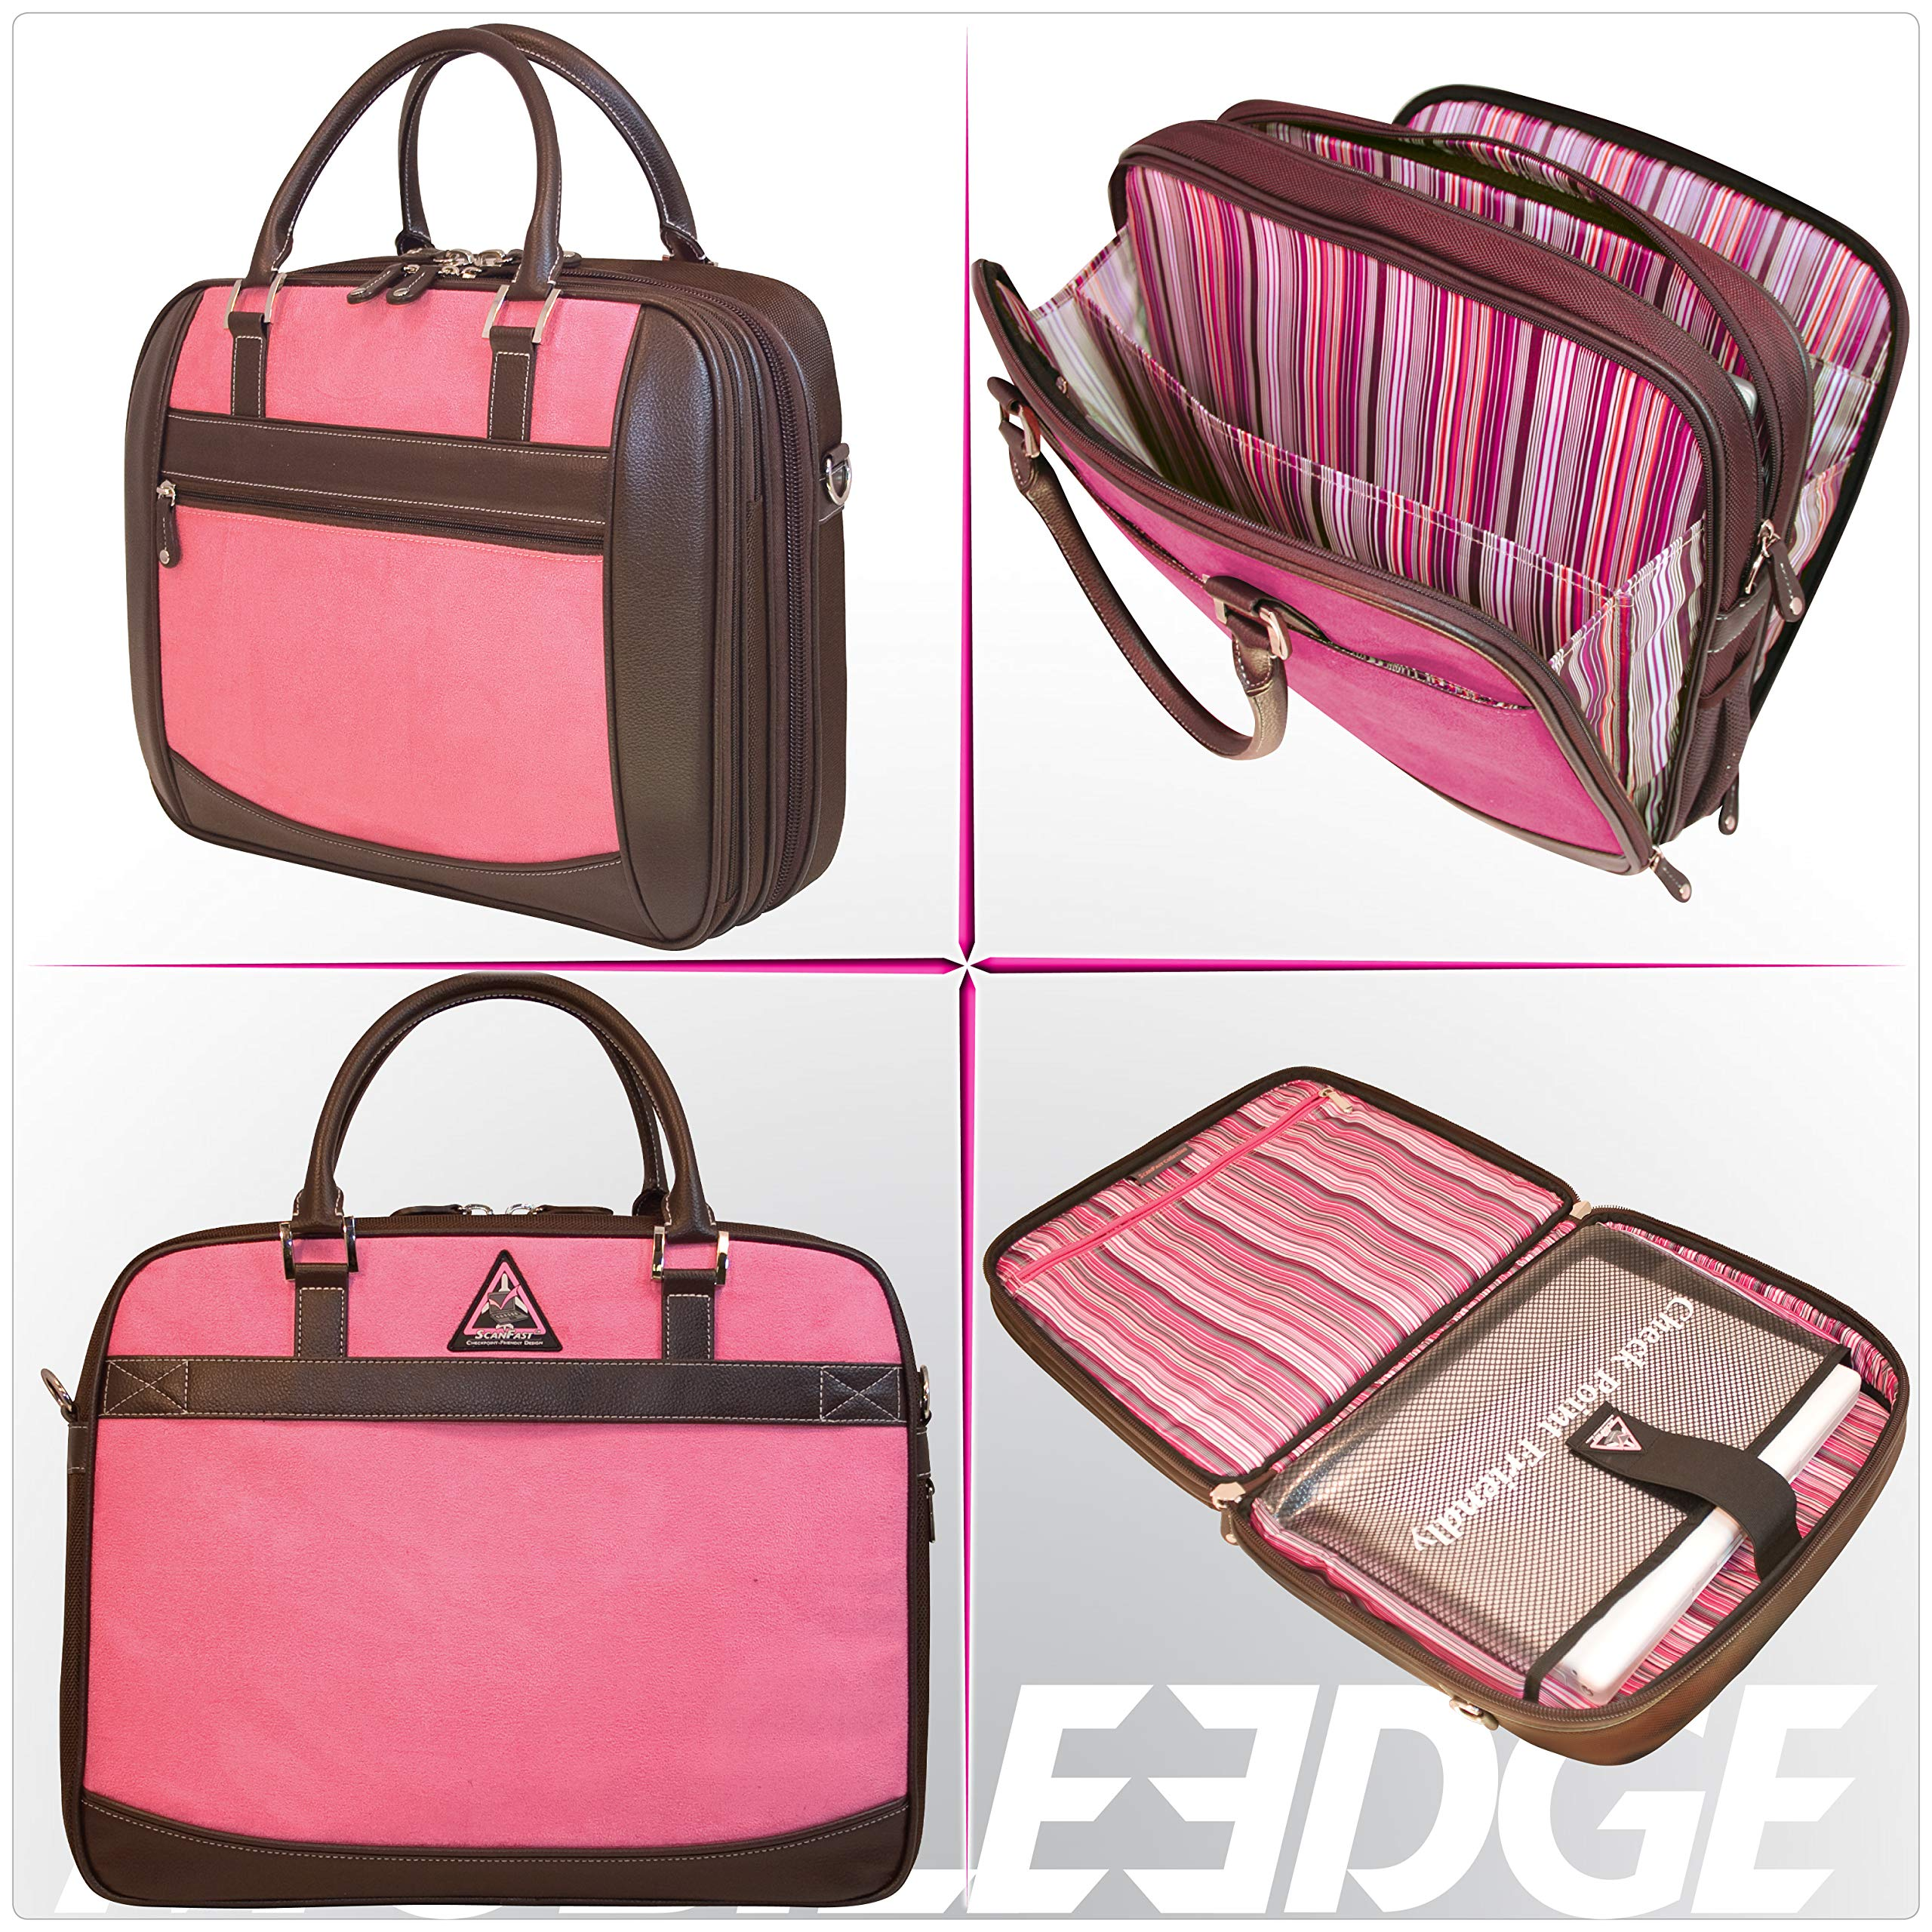 Mobile Edge Women's Black w/Pink, Checkpoint Friendly Element Laptop Briefcase 16 Inch PC, 17 Inch MacBook, Business, Travel MESFEBX by Mobile Edge (Image #5)